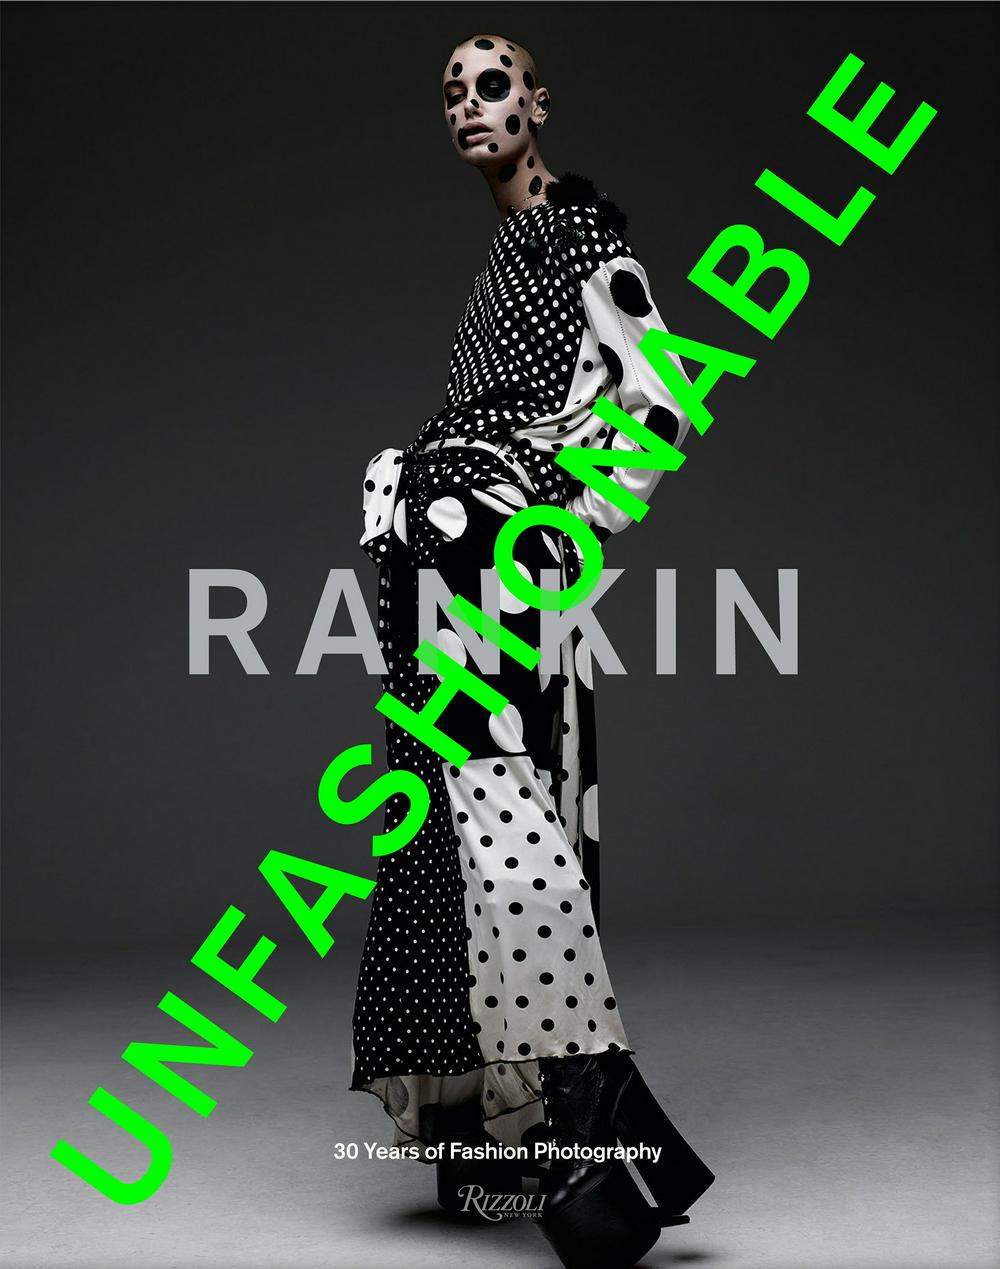 Rankin: Unfashionable: 30 Years of Fashion Photography